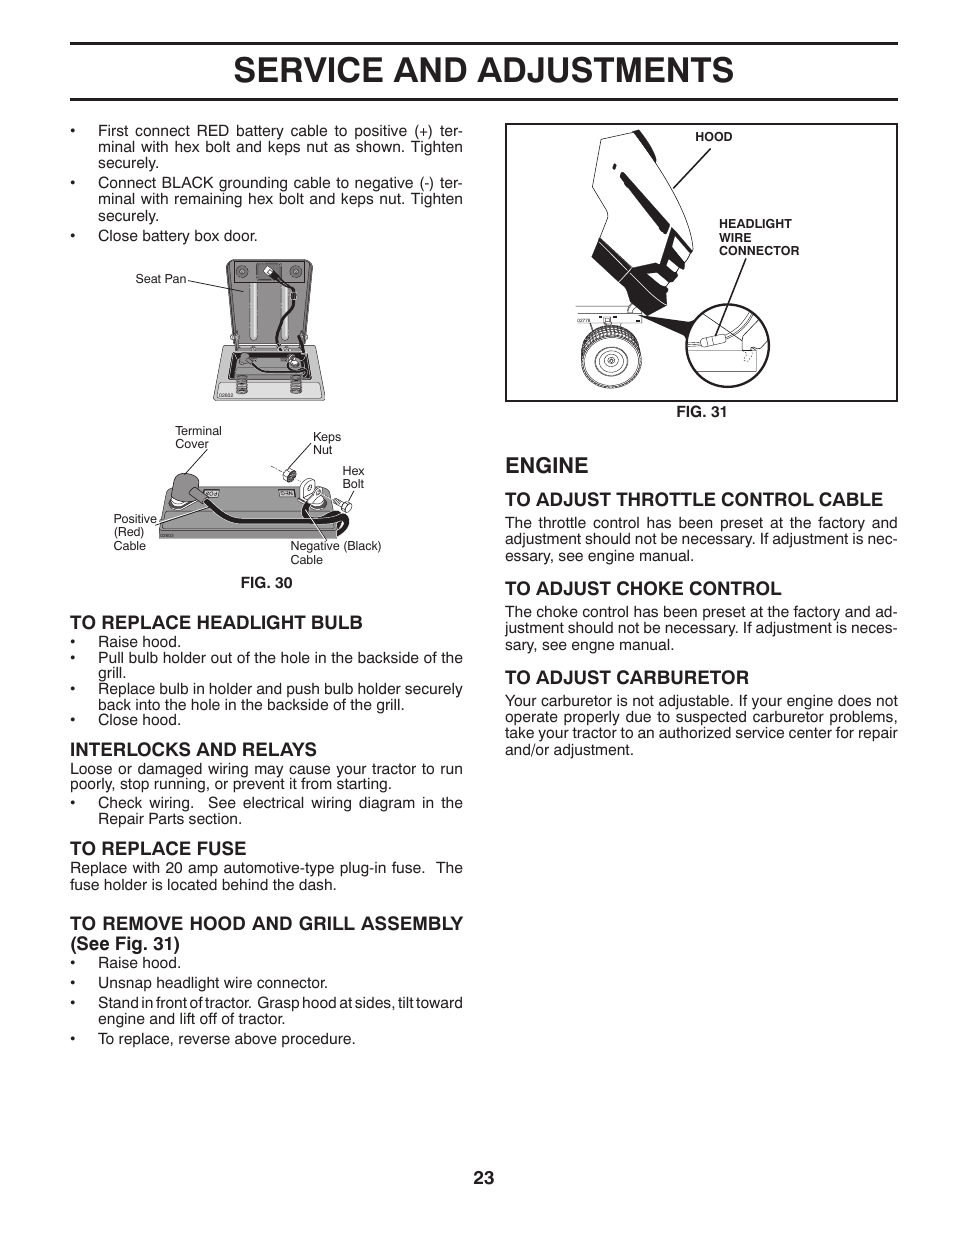 Service And Adjustments Engine Husqvarna 2246ls User Manual Wiring Diagram Page 23 44